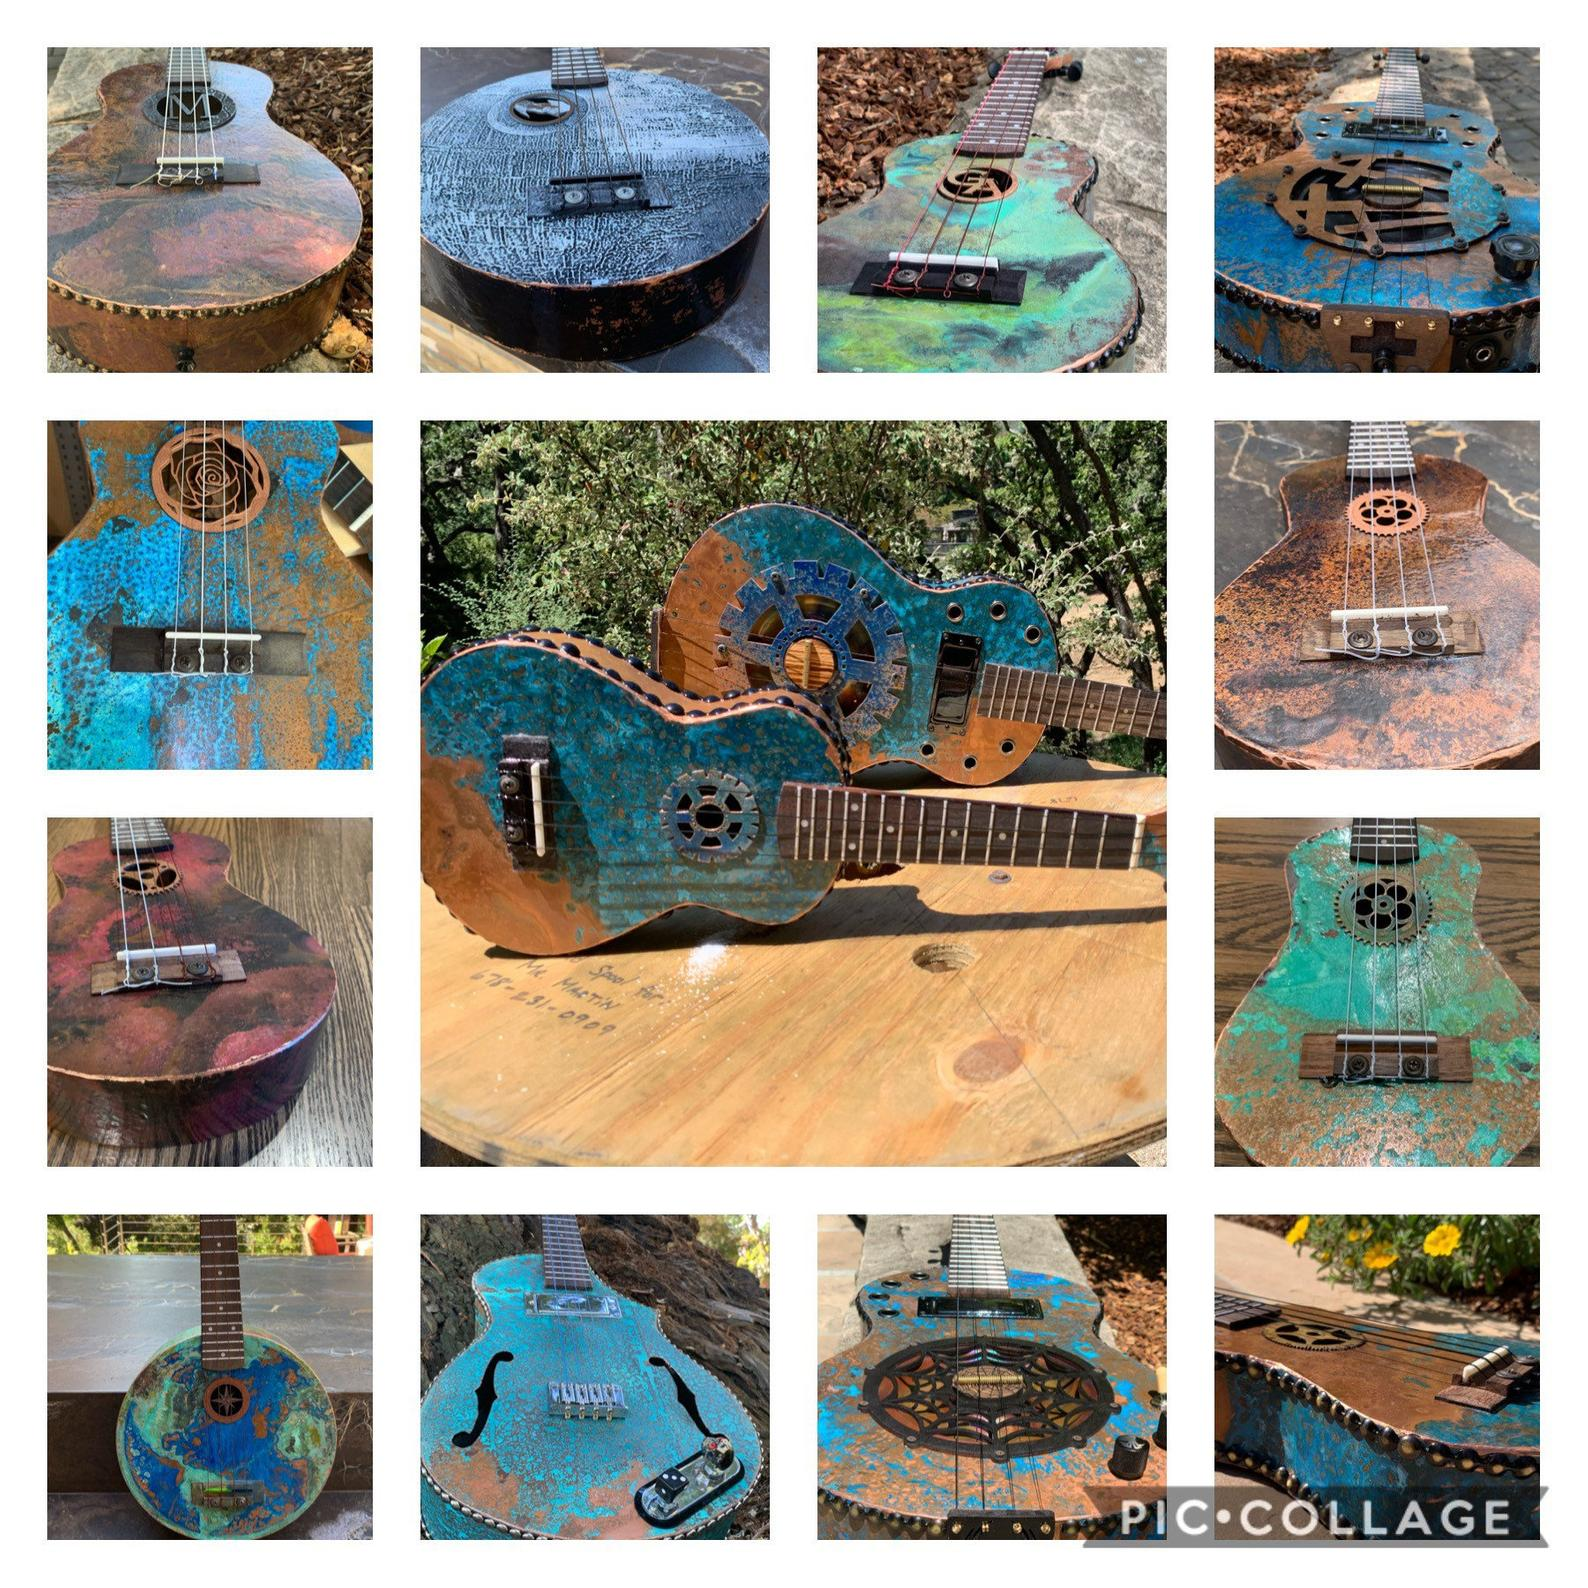 Custom Copper Ukulele by Gifter World